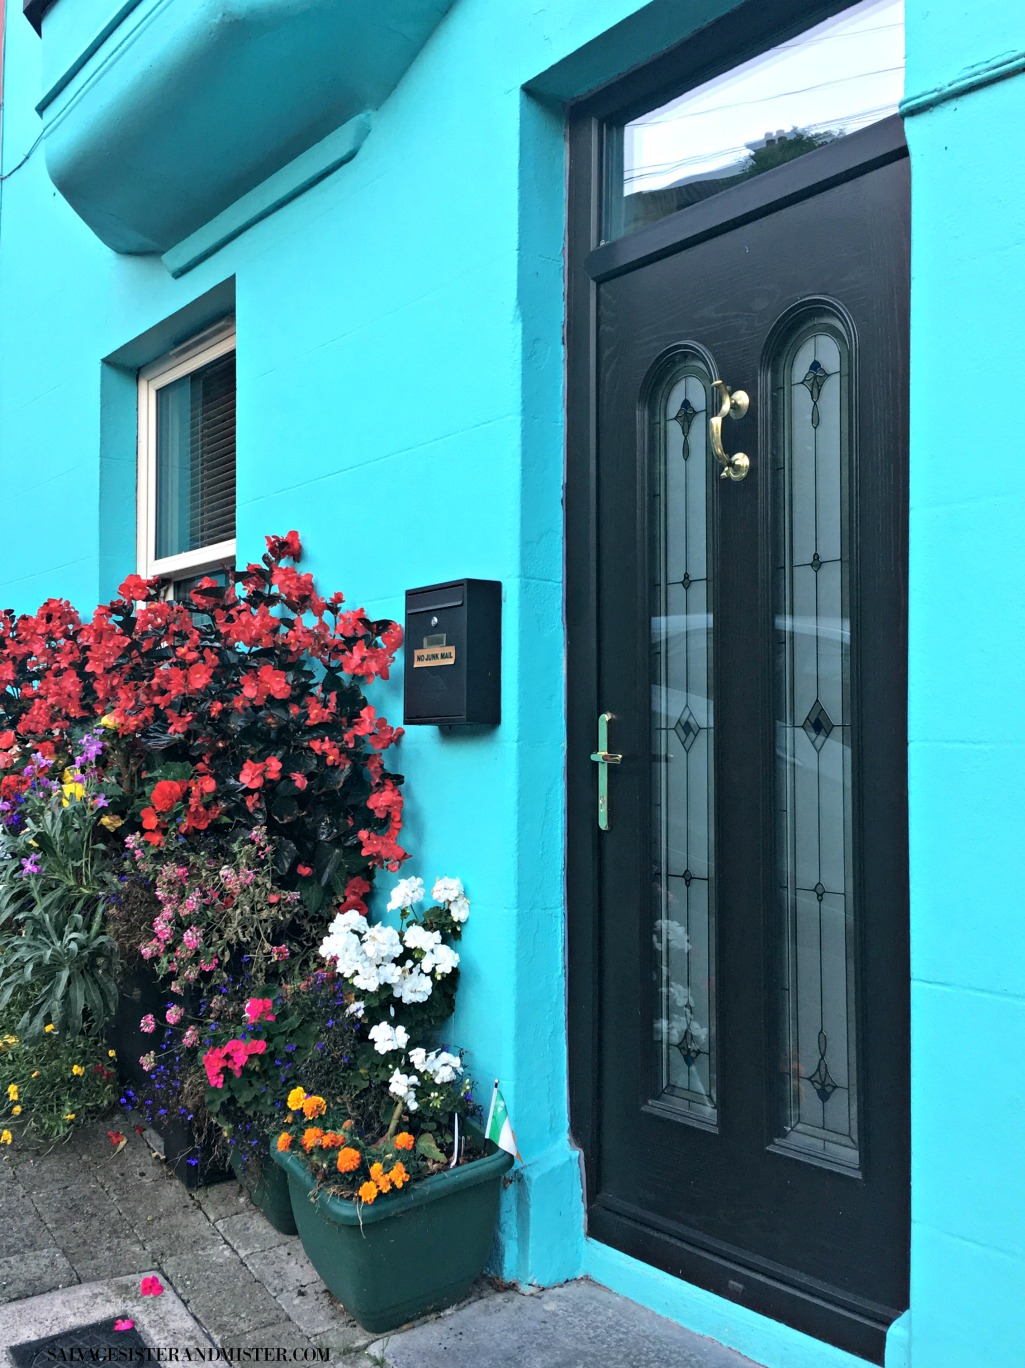 salvage moments - travel - sharing ur trip to ireland and the beautiful doors on salvagesisterandmister.com